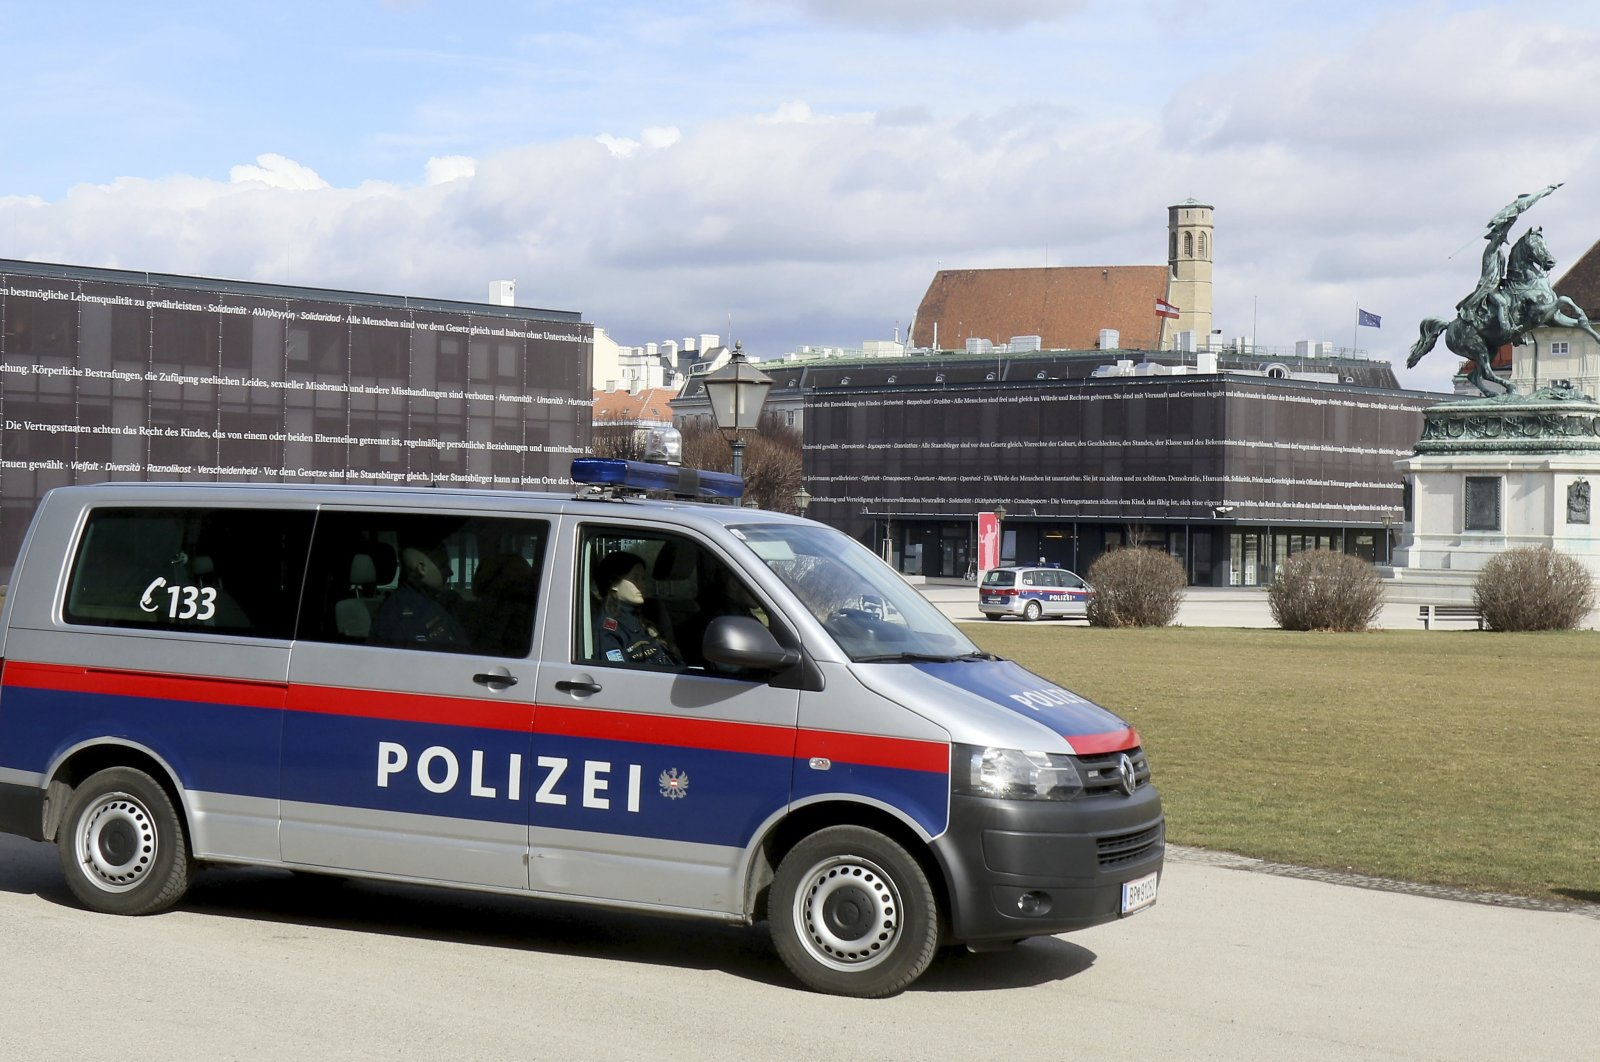 A police car stands in front of the parliament after an attack in Vienna, Austria on March 13, 2018. (AP Photo)